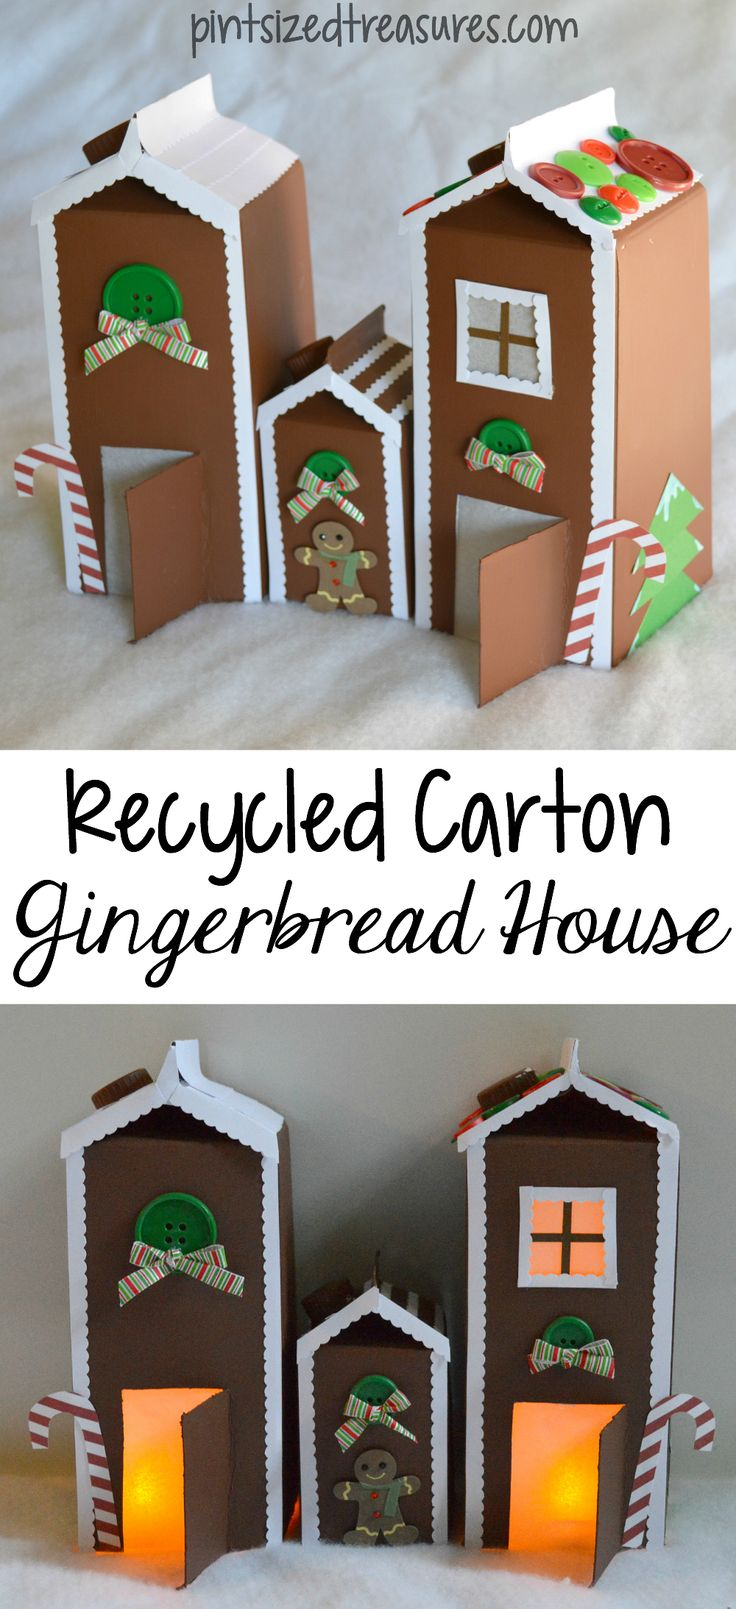 Easy paper gingerbread house made for recyclables! @alicanwrite